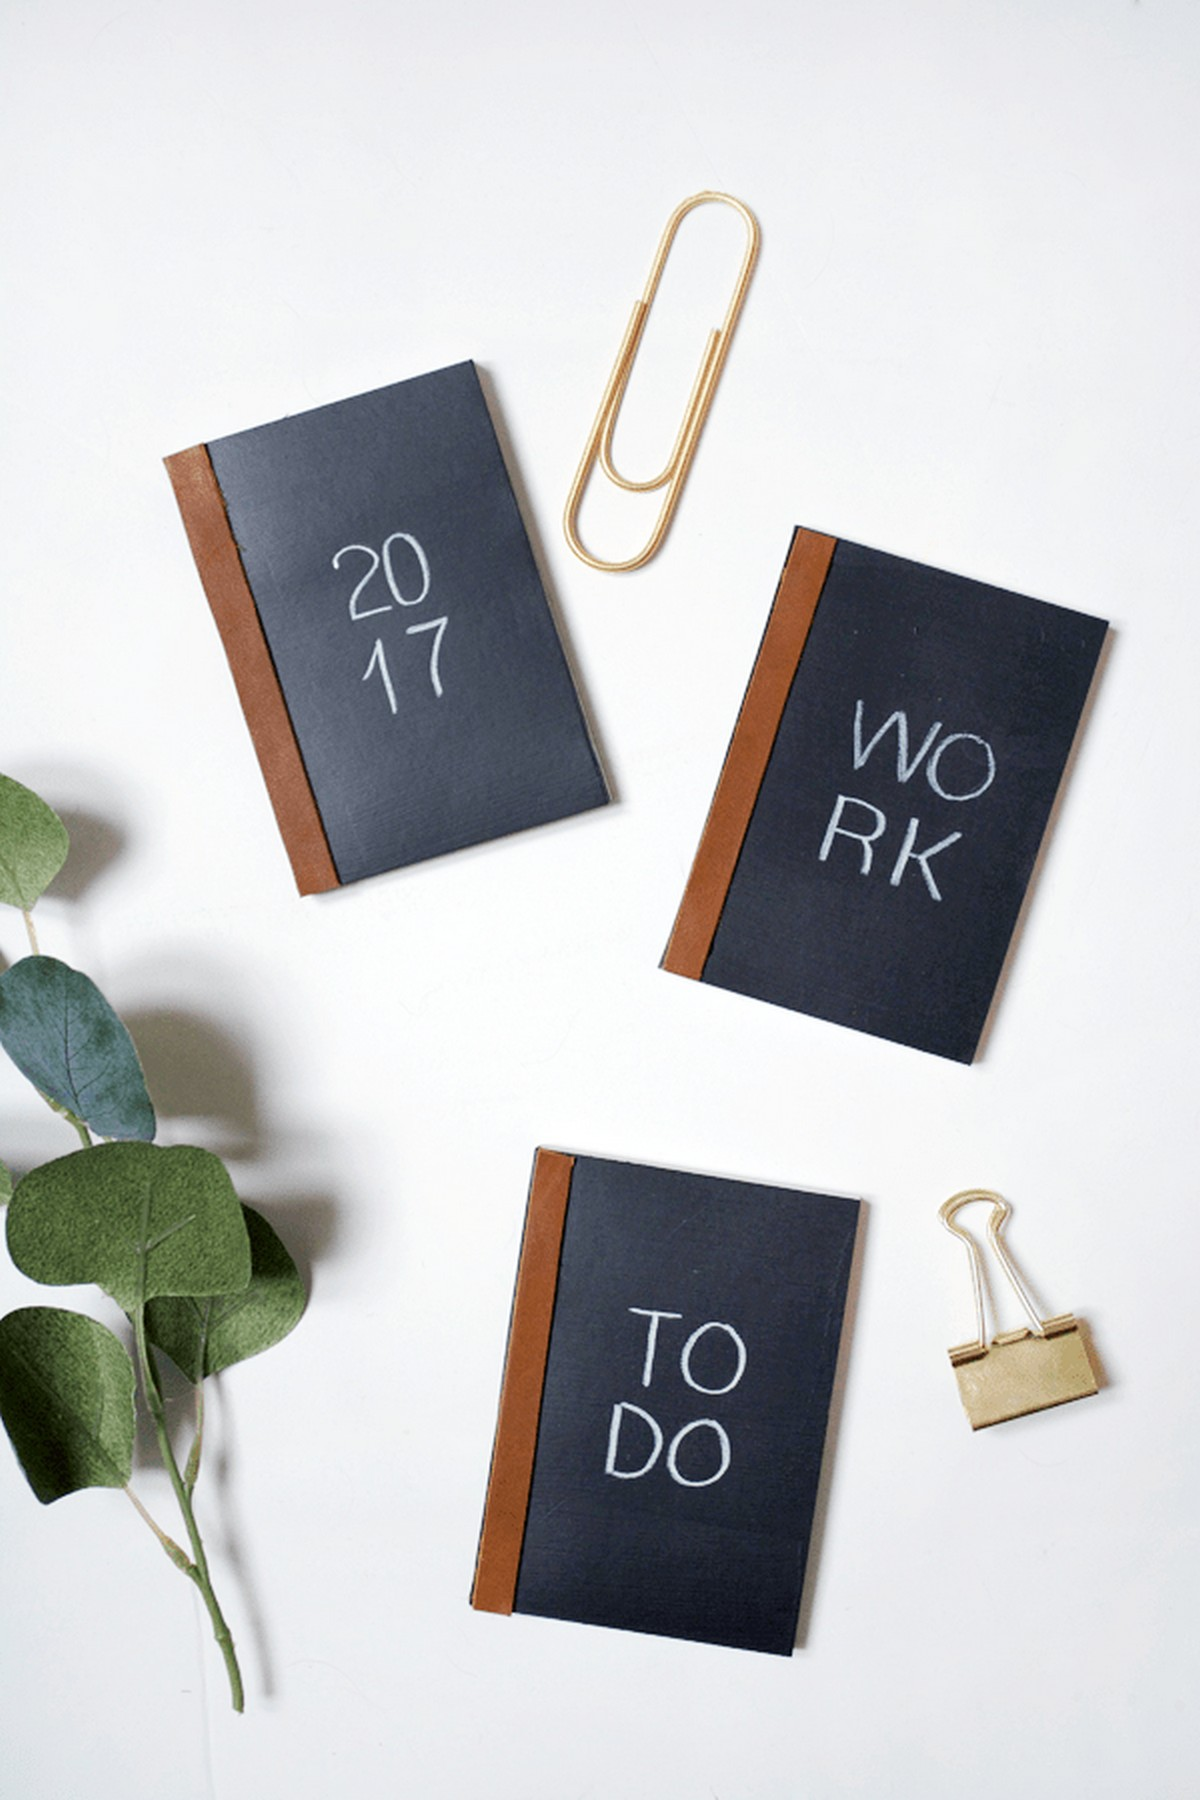 Plan out your new year's goals and to do lists in these cute little Chalkboard Notebooks!